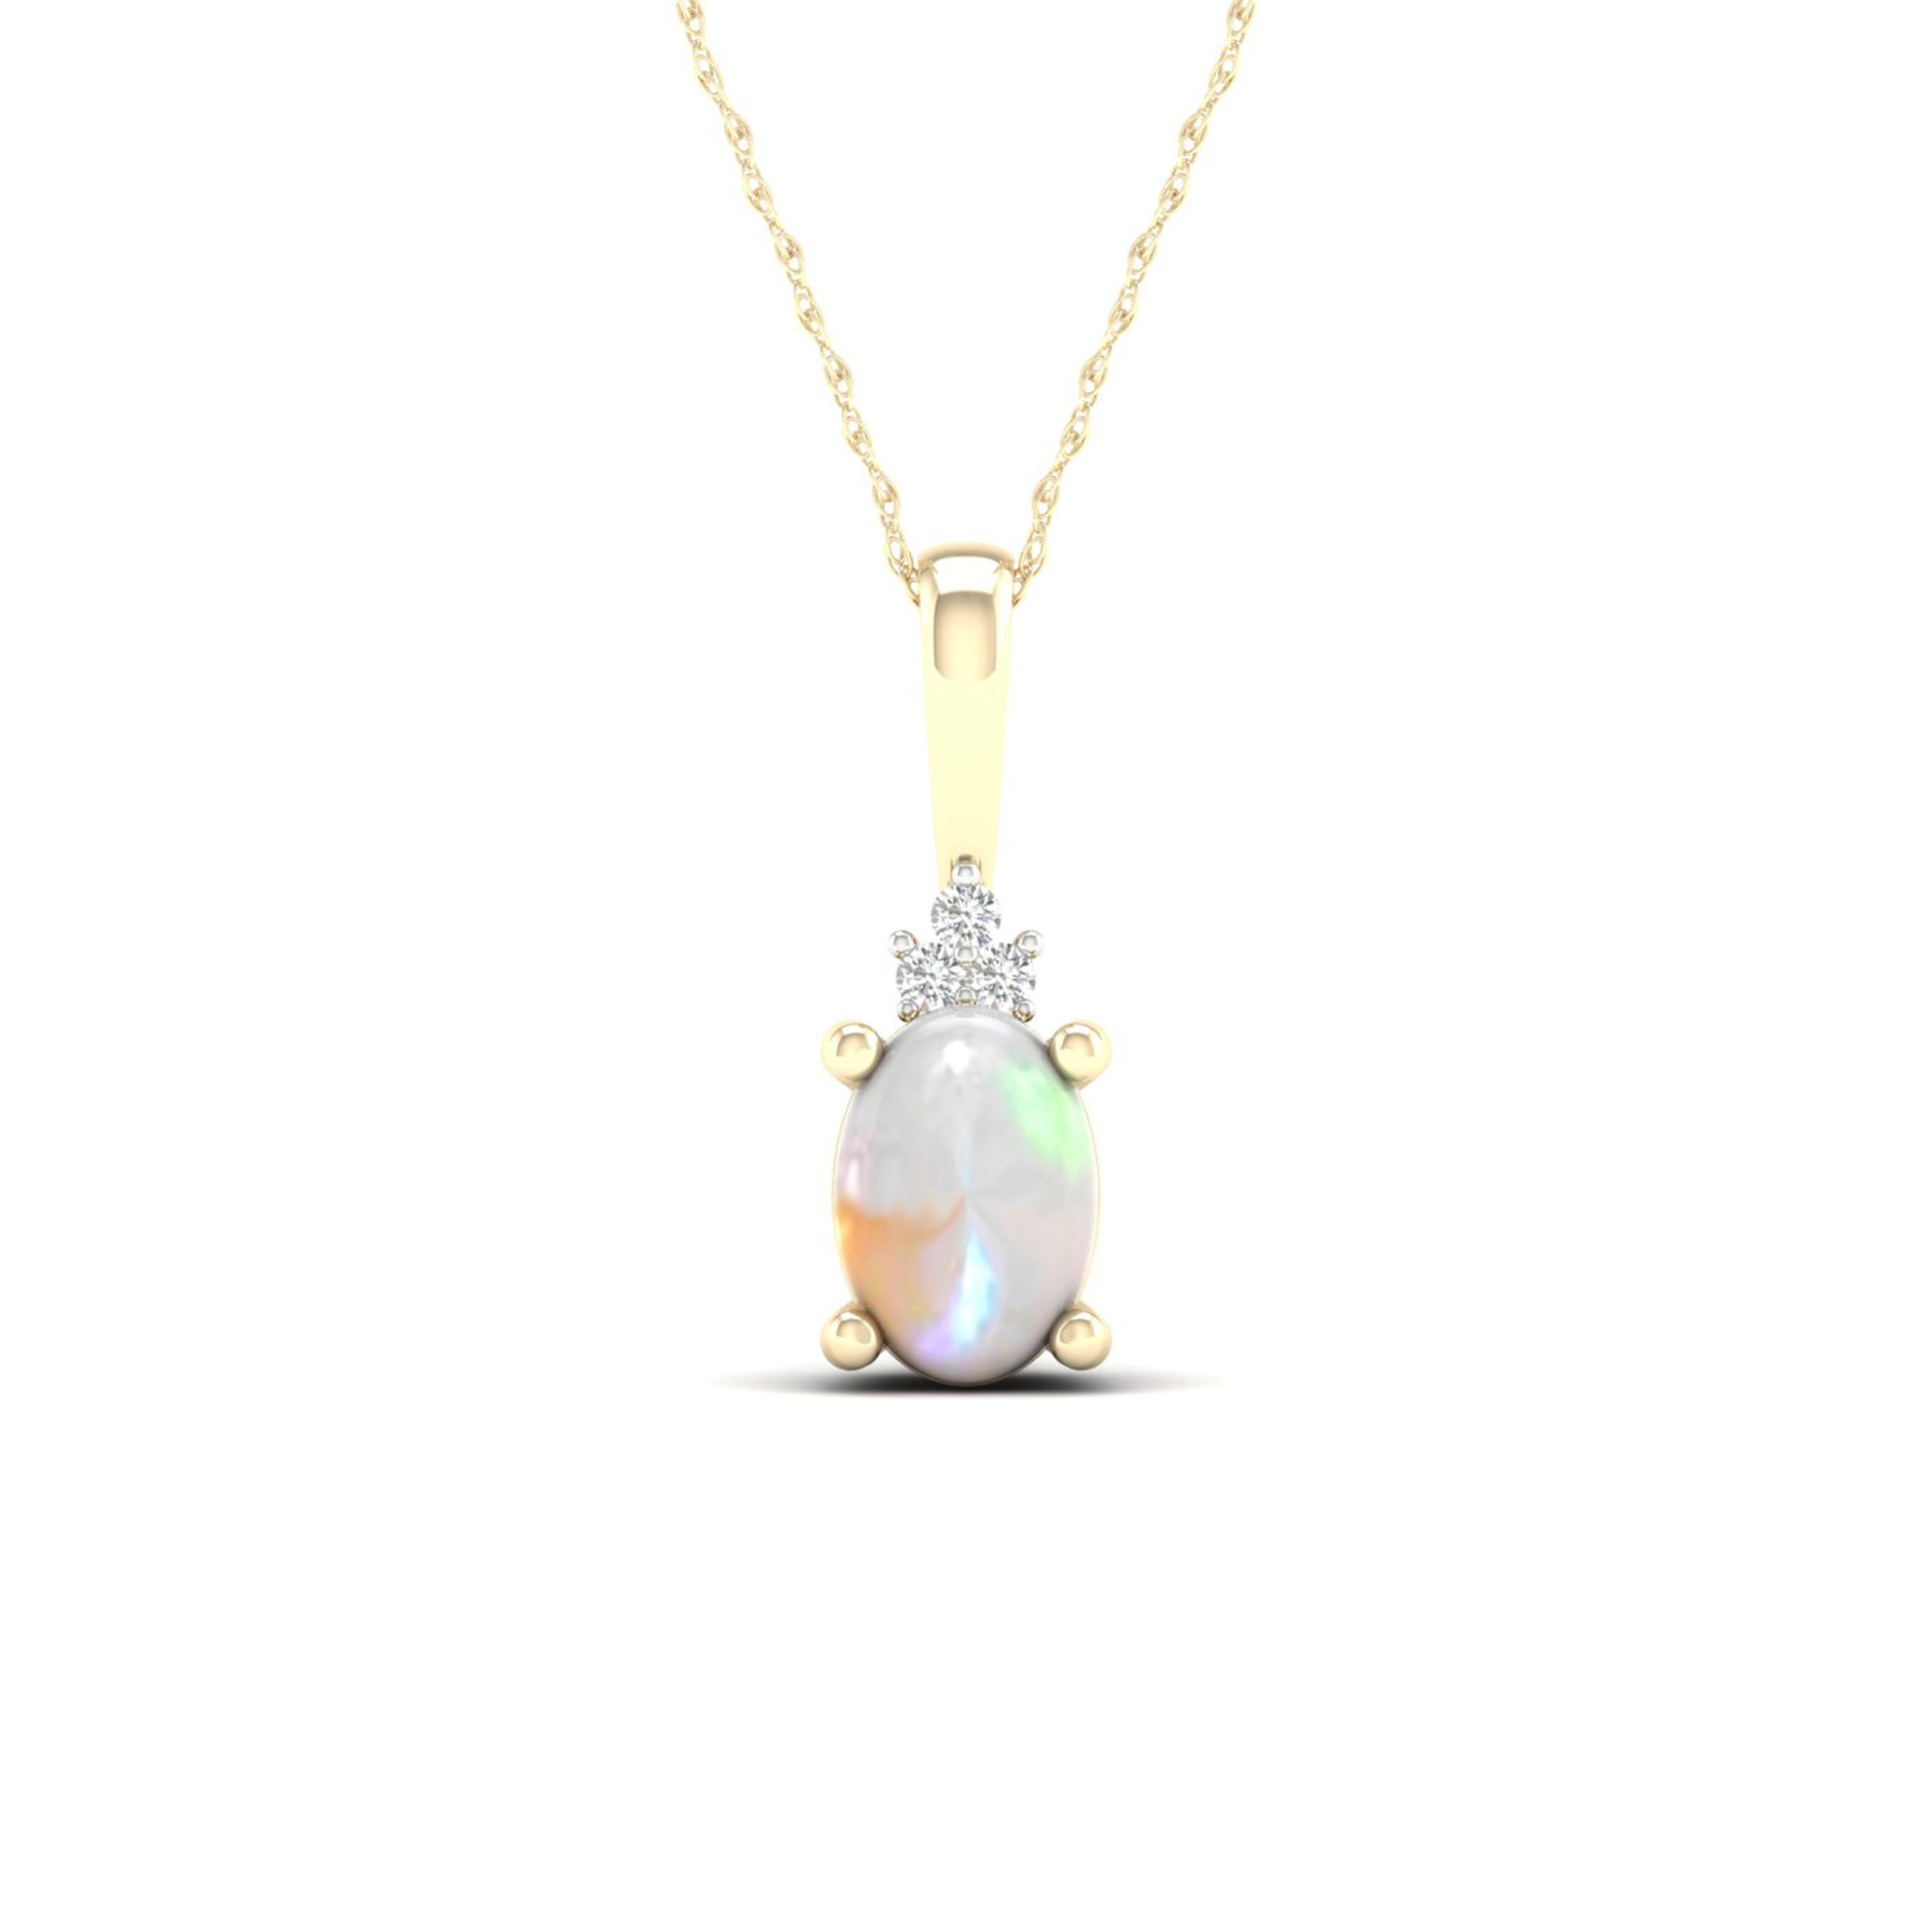 Oval Ethiopian Opal Solitaire Pendant in 10k Yellow Gold